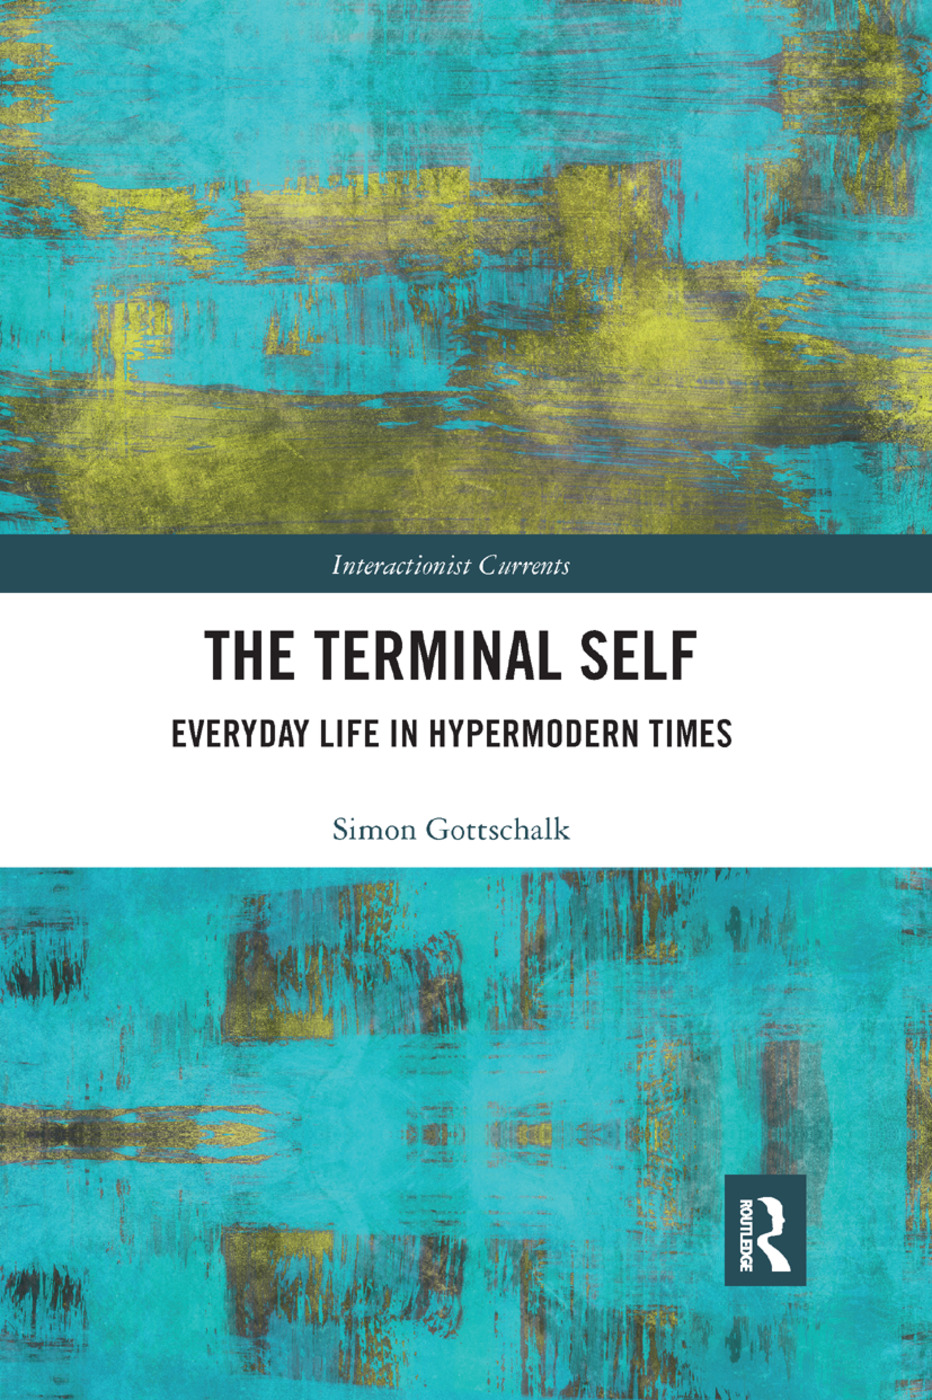 The Terminal Self: Everyday Life in Hypermodern Times book cover